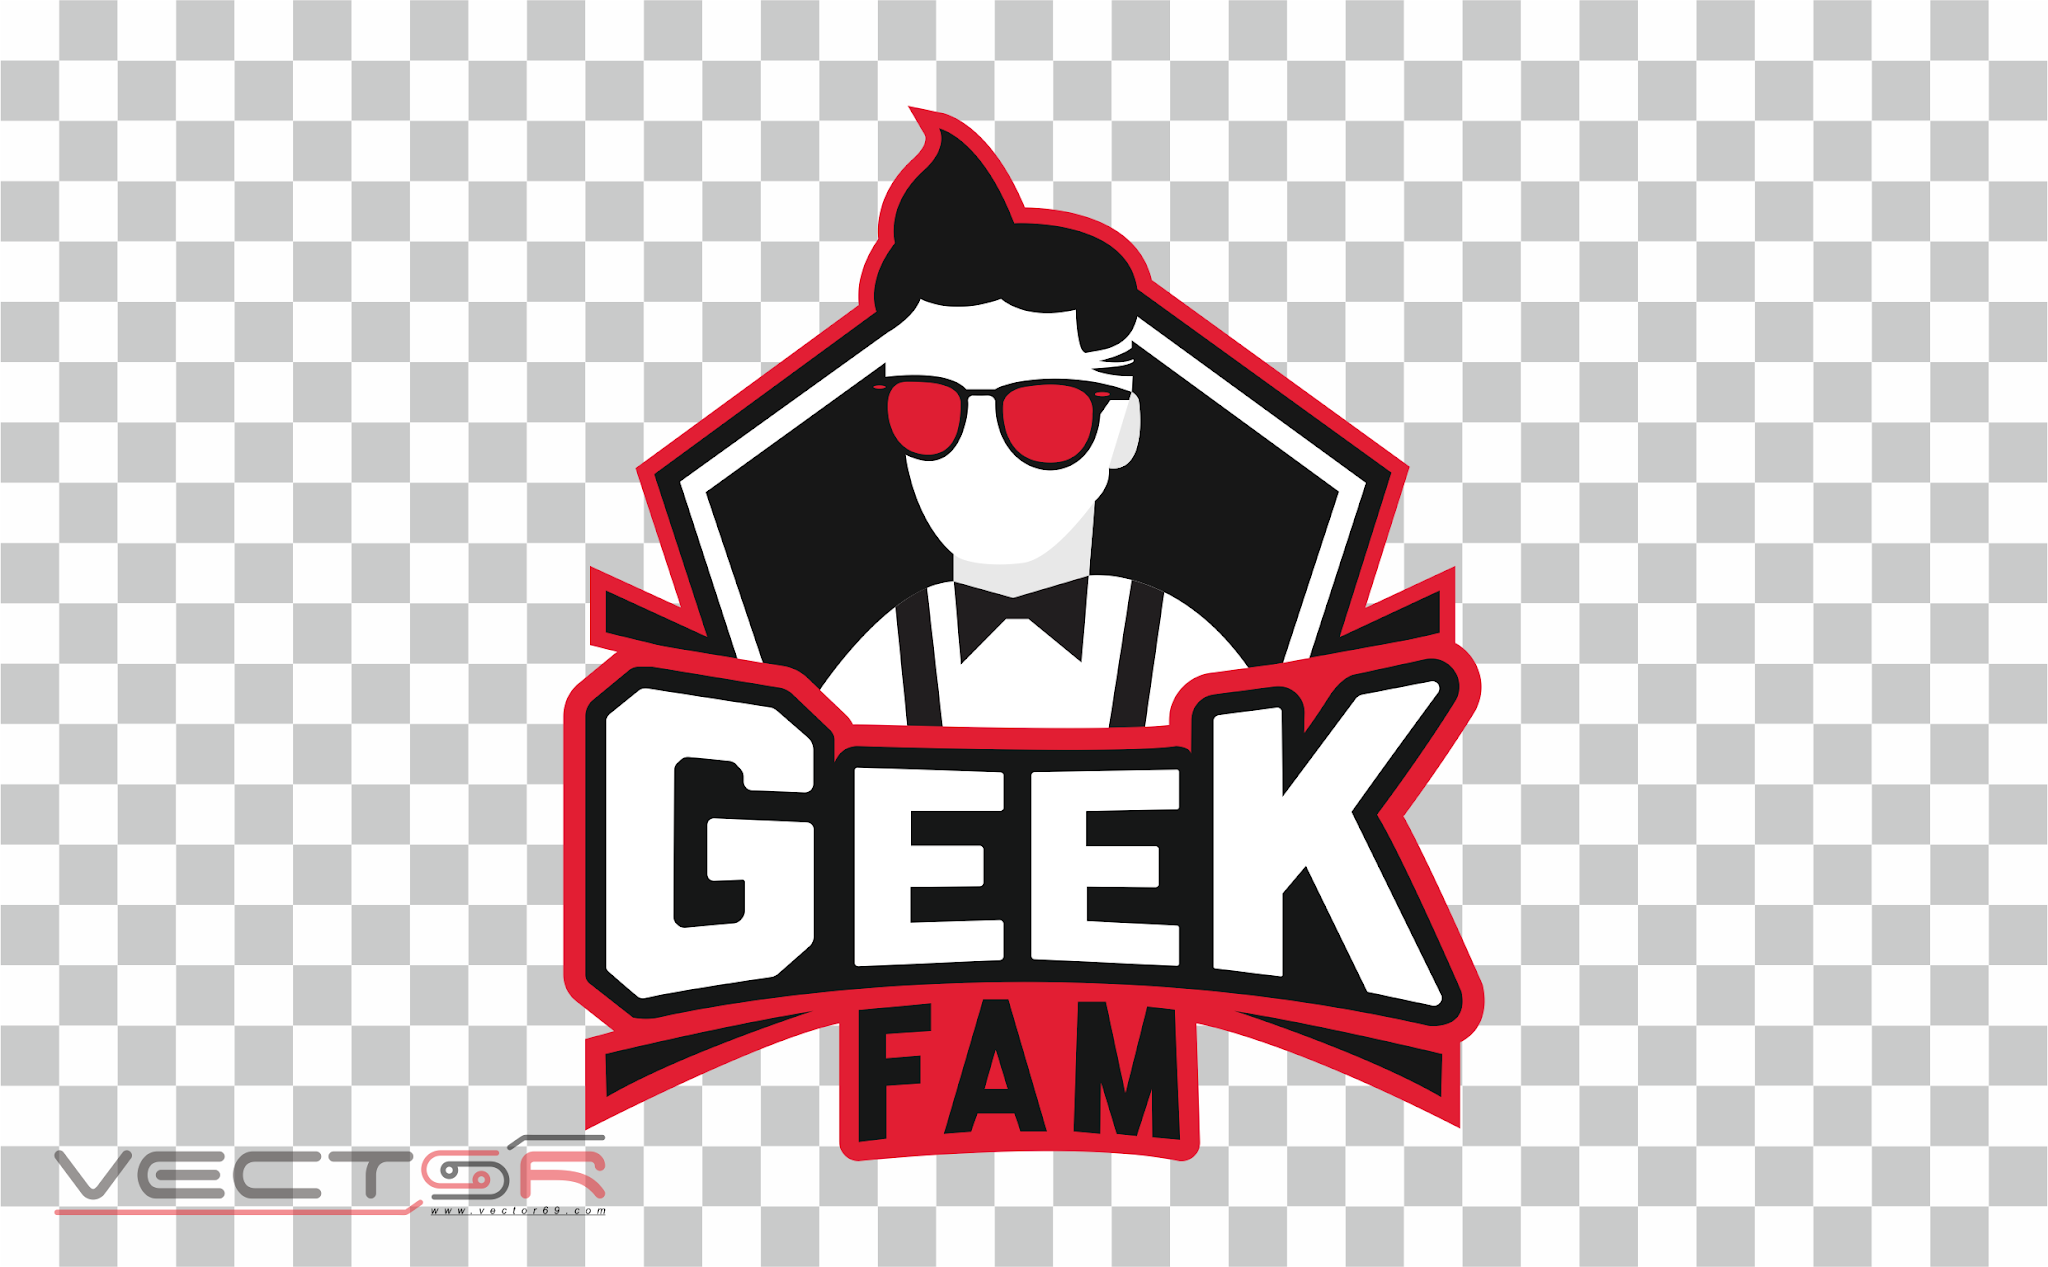 Geek Fam Logo - Download Vector File PNG (Portable Network Graphics)